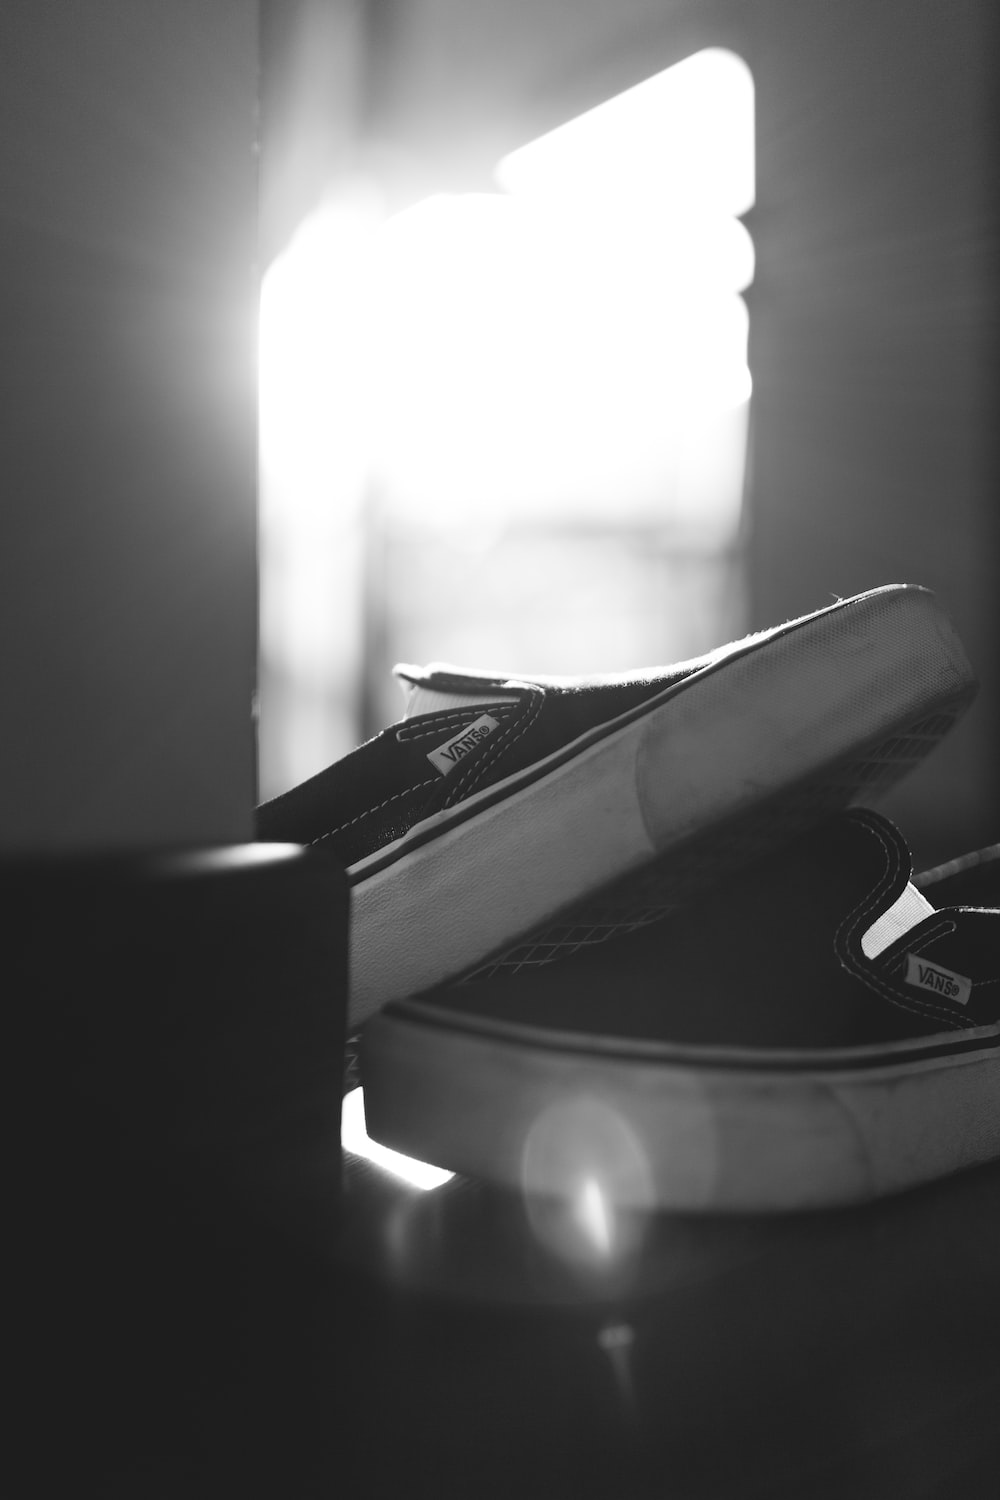 grayscale photo of book on table